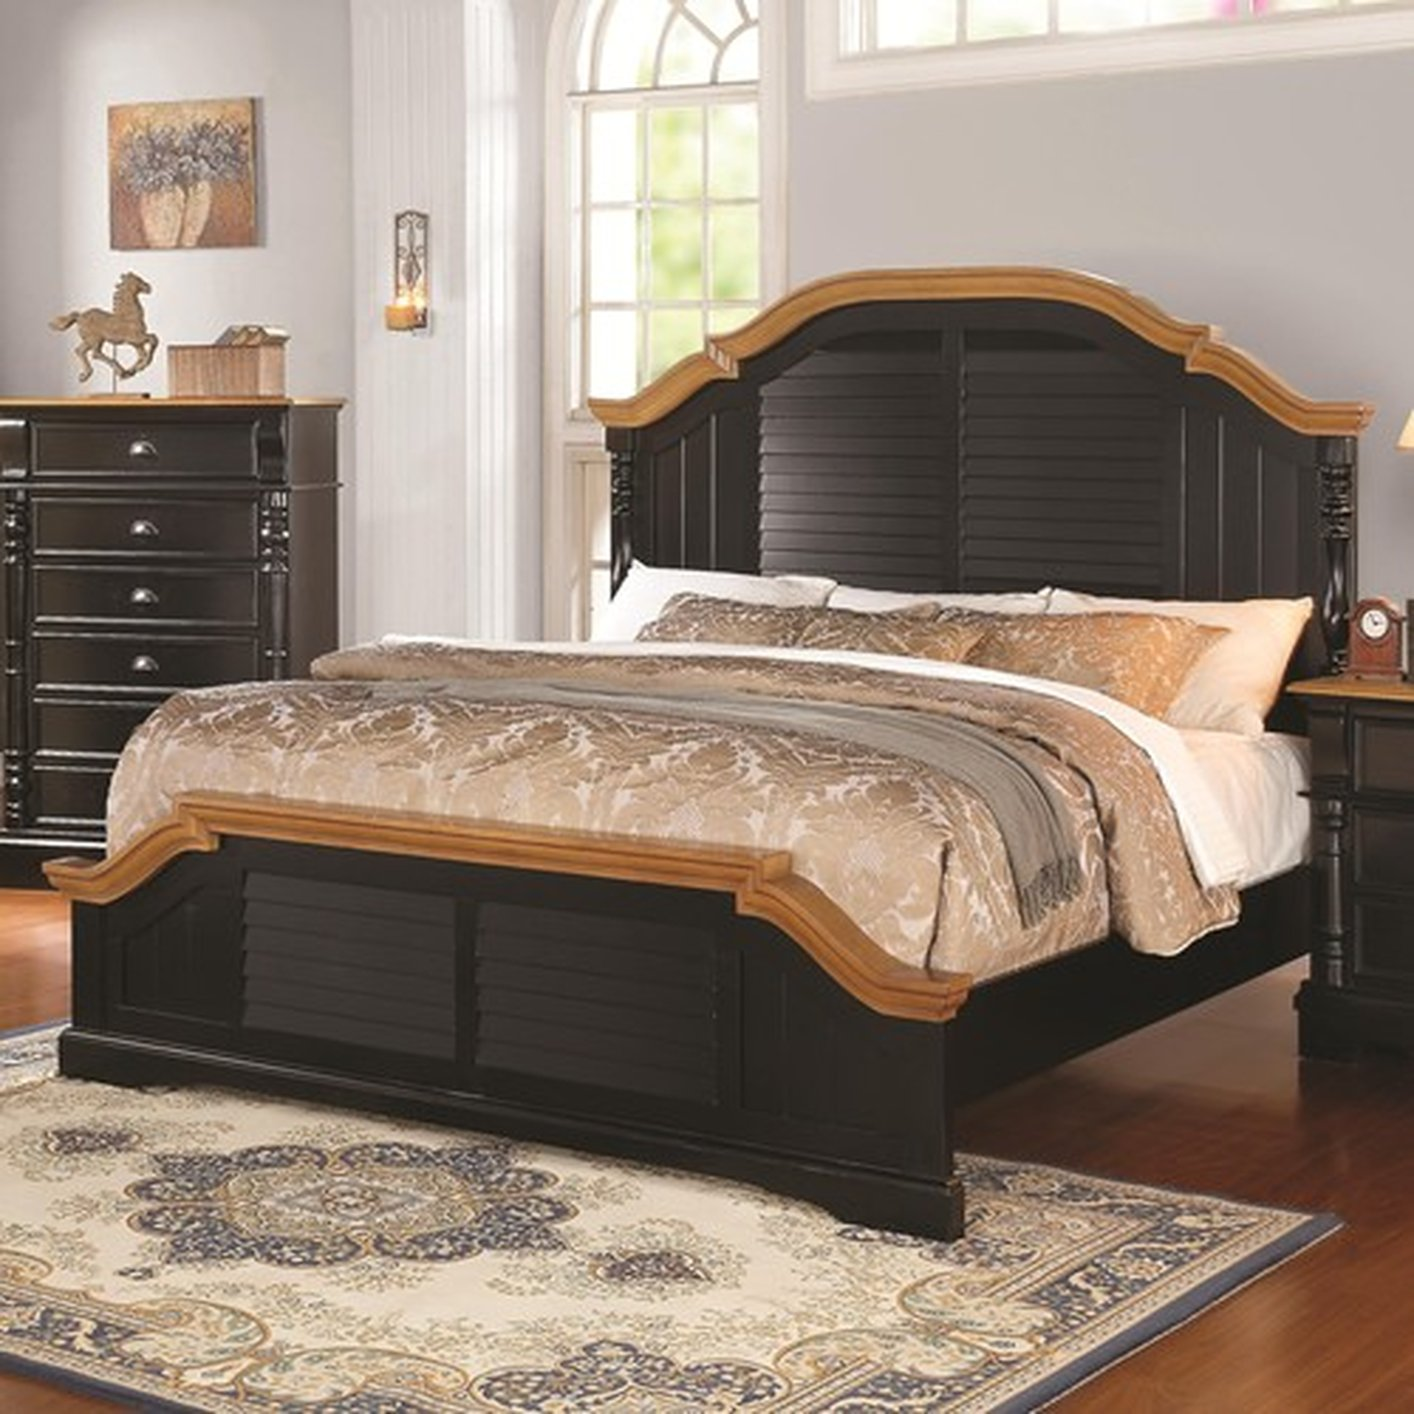 Black Wood Eastern King Size Bed Steal A Sofa Furniture